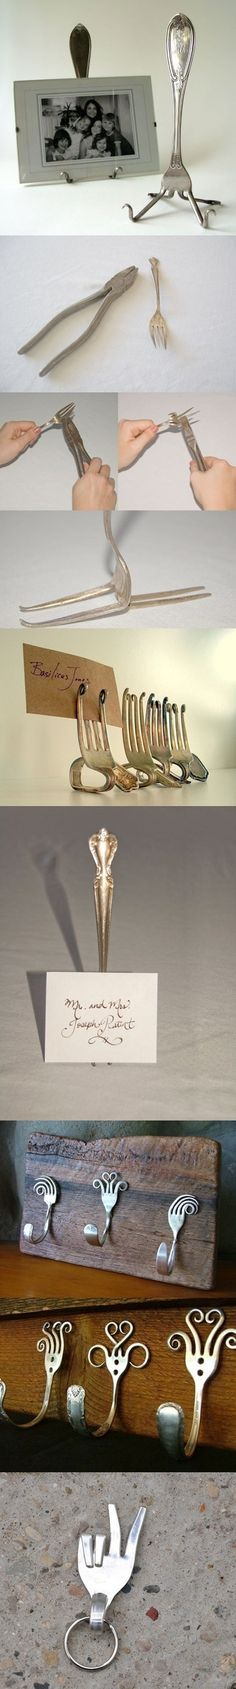 Creative uses for forks